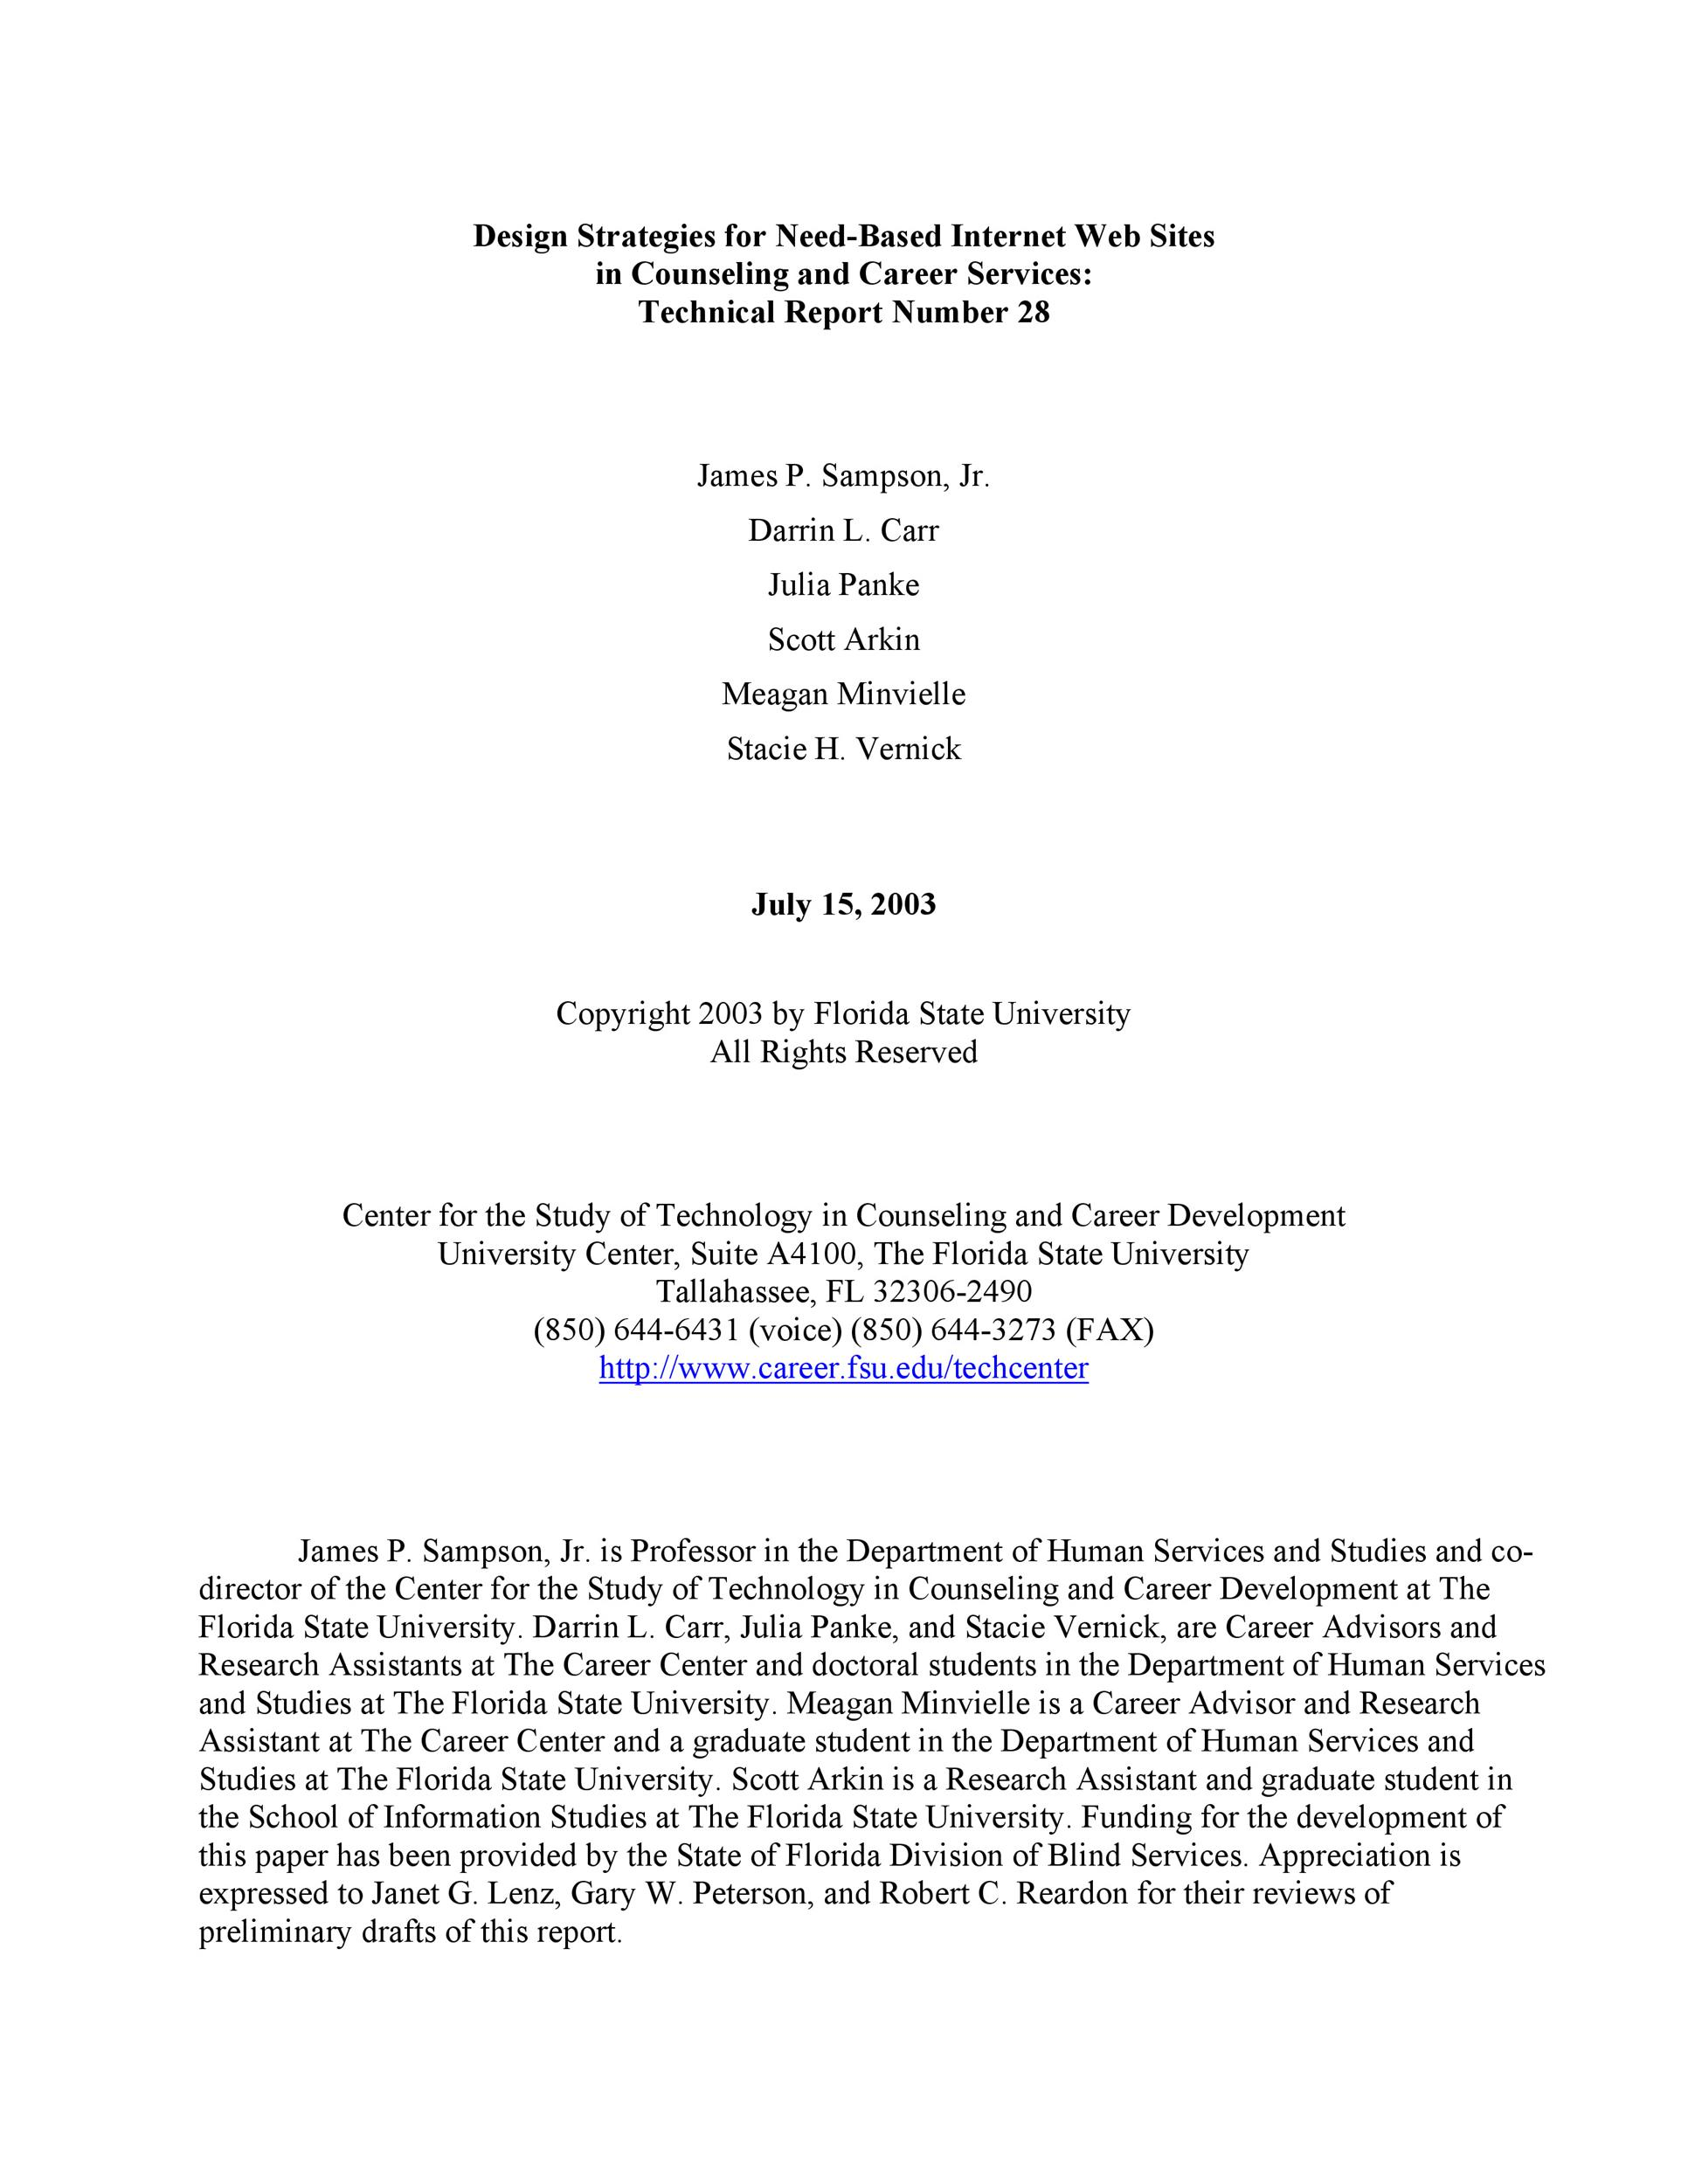 Free technical report template 34